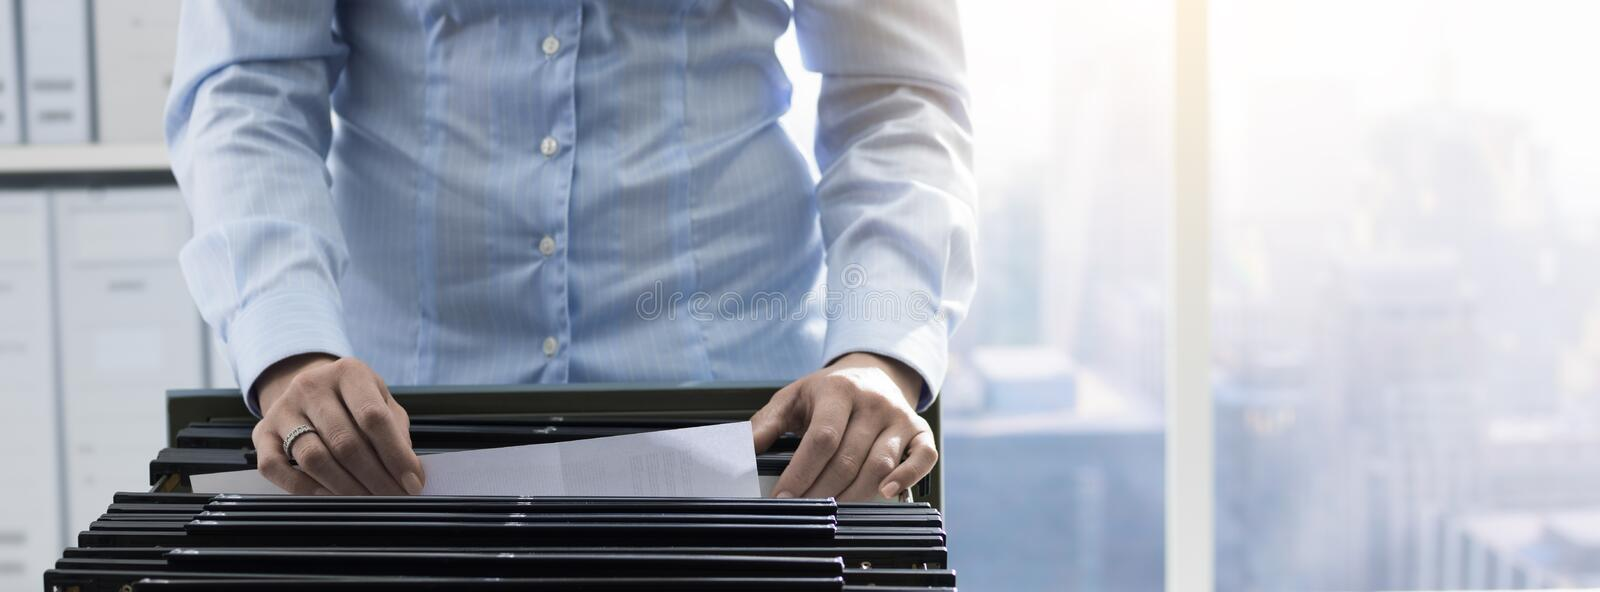 Office worker searching files in the archive. Female office worker searching files and paperwork in the archive, she is checking folders in a filing cabinet stock photo